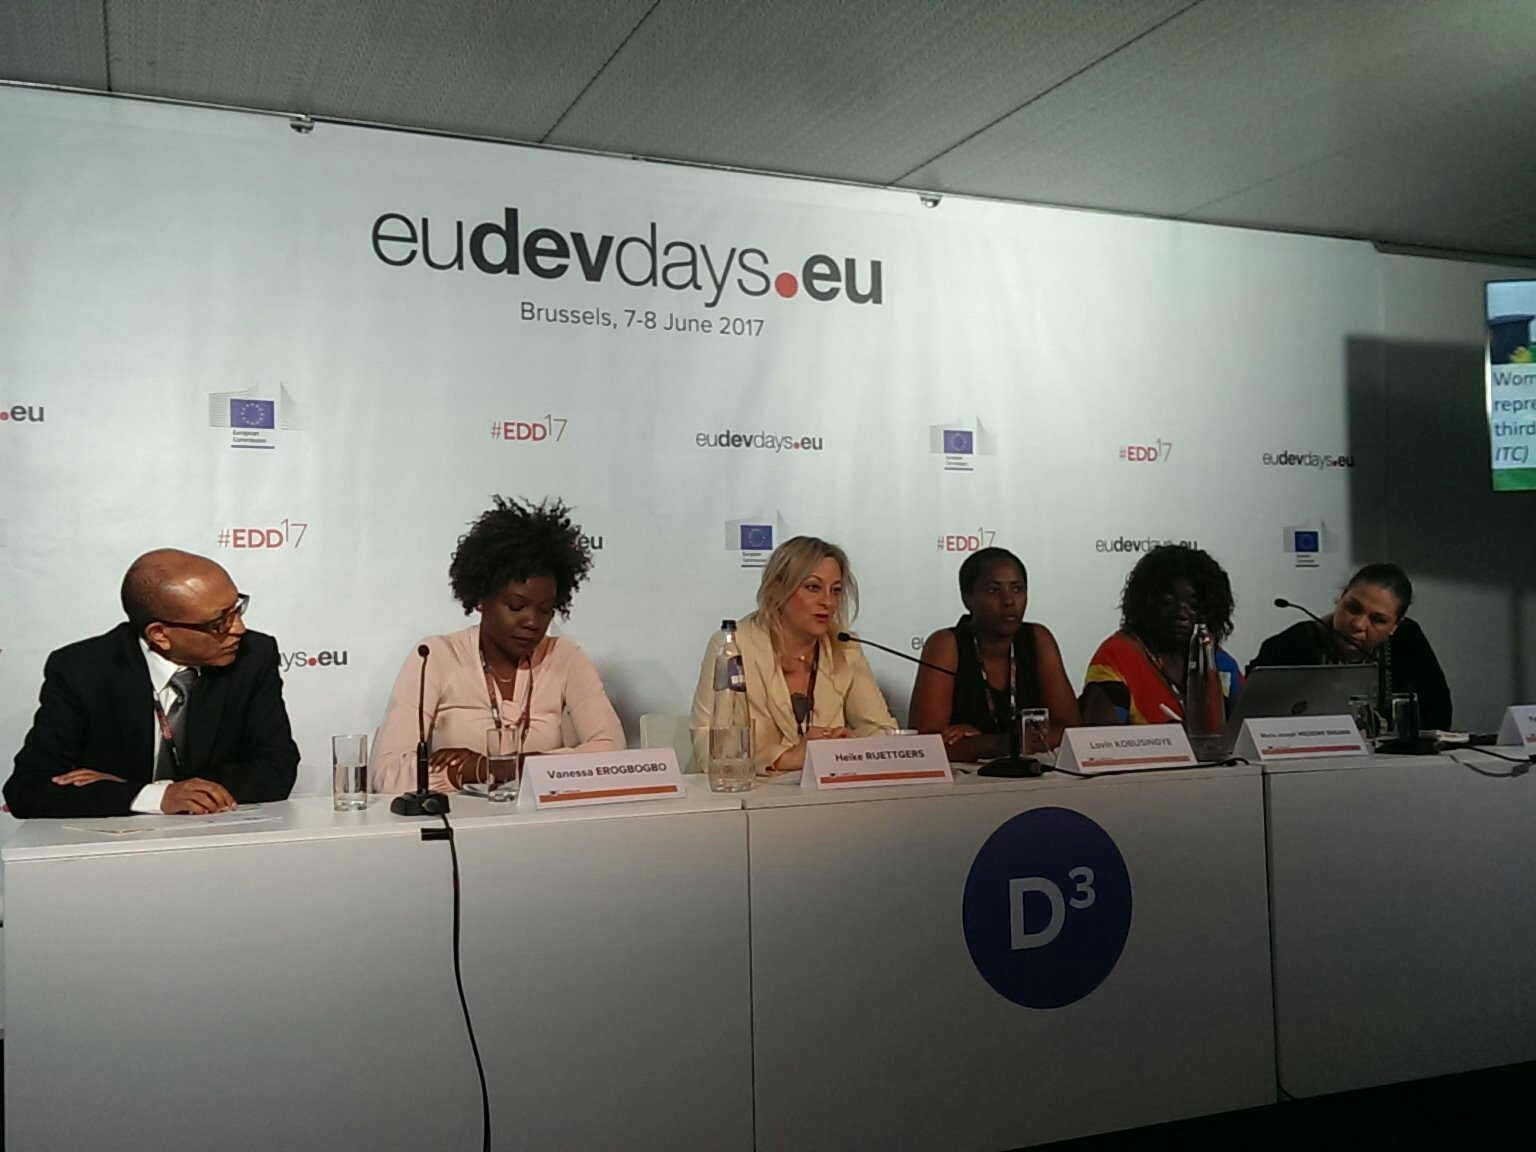 The @EIB adopted a #gender strategy in 2016 & @ruettgers_h notes there's a strong business case for investing in #Women #EDD17 https://t.co/Dz6GiPFW7S